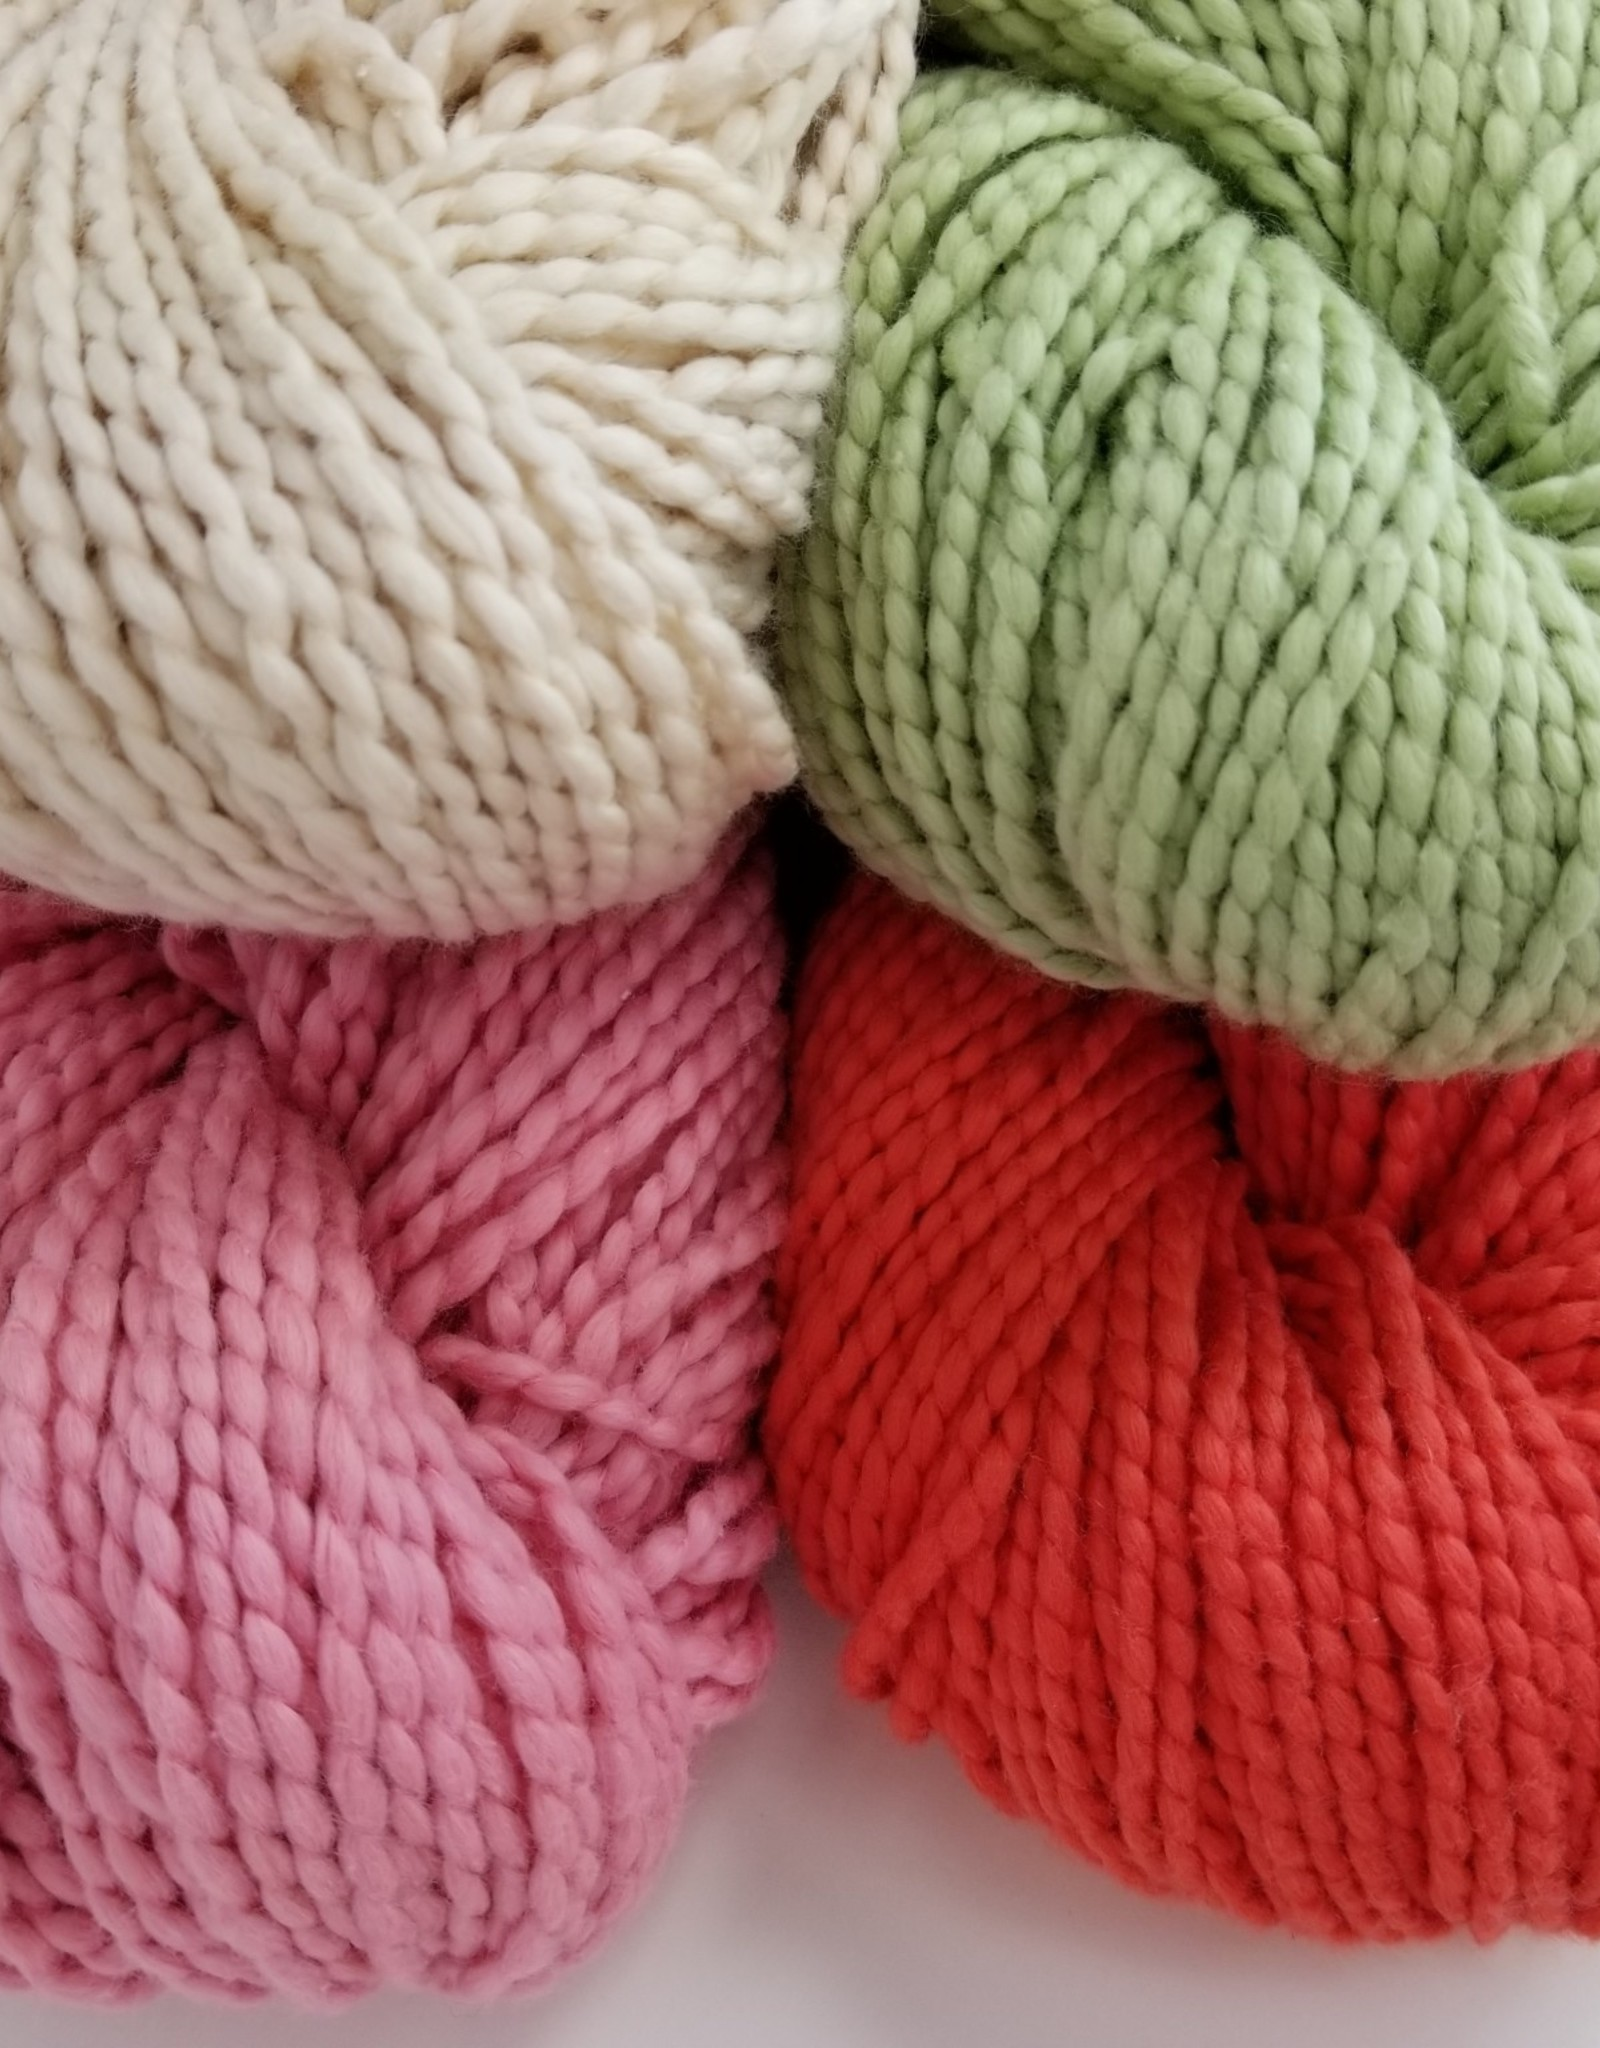 Plymouth Yarns KIT Cotton Bulky Baby Blanket rose/coral/grn/nat 400g